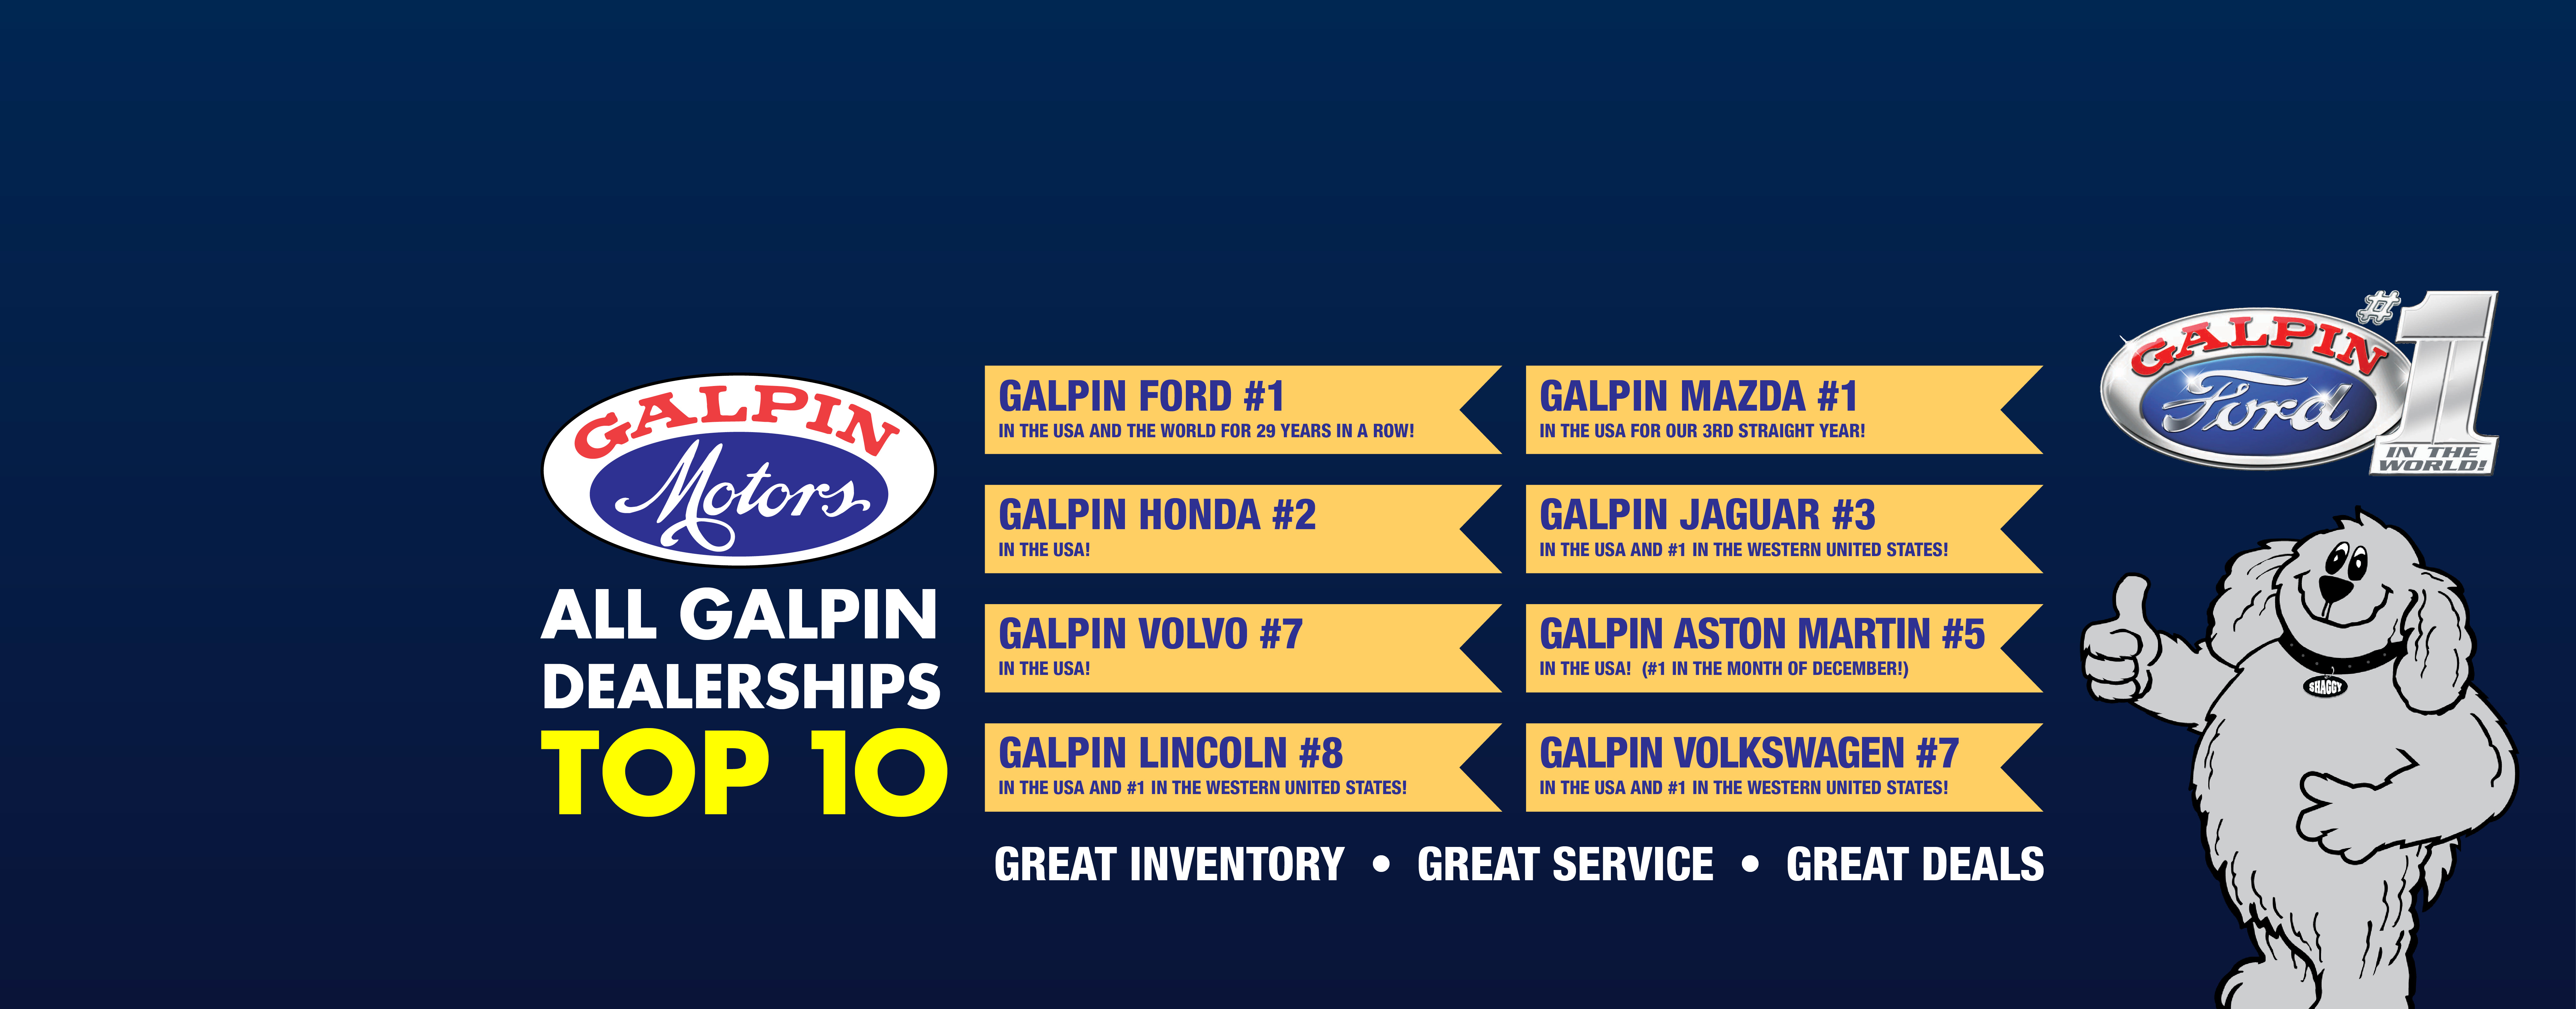 Galpin Motors: New & Used Car Dealerships Los Angeles, San